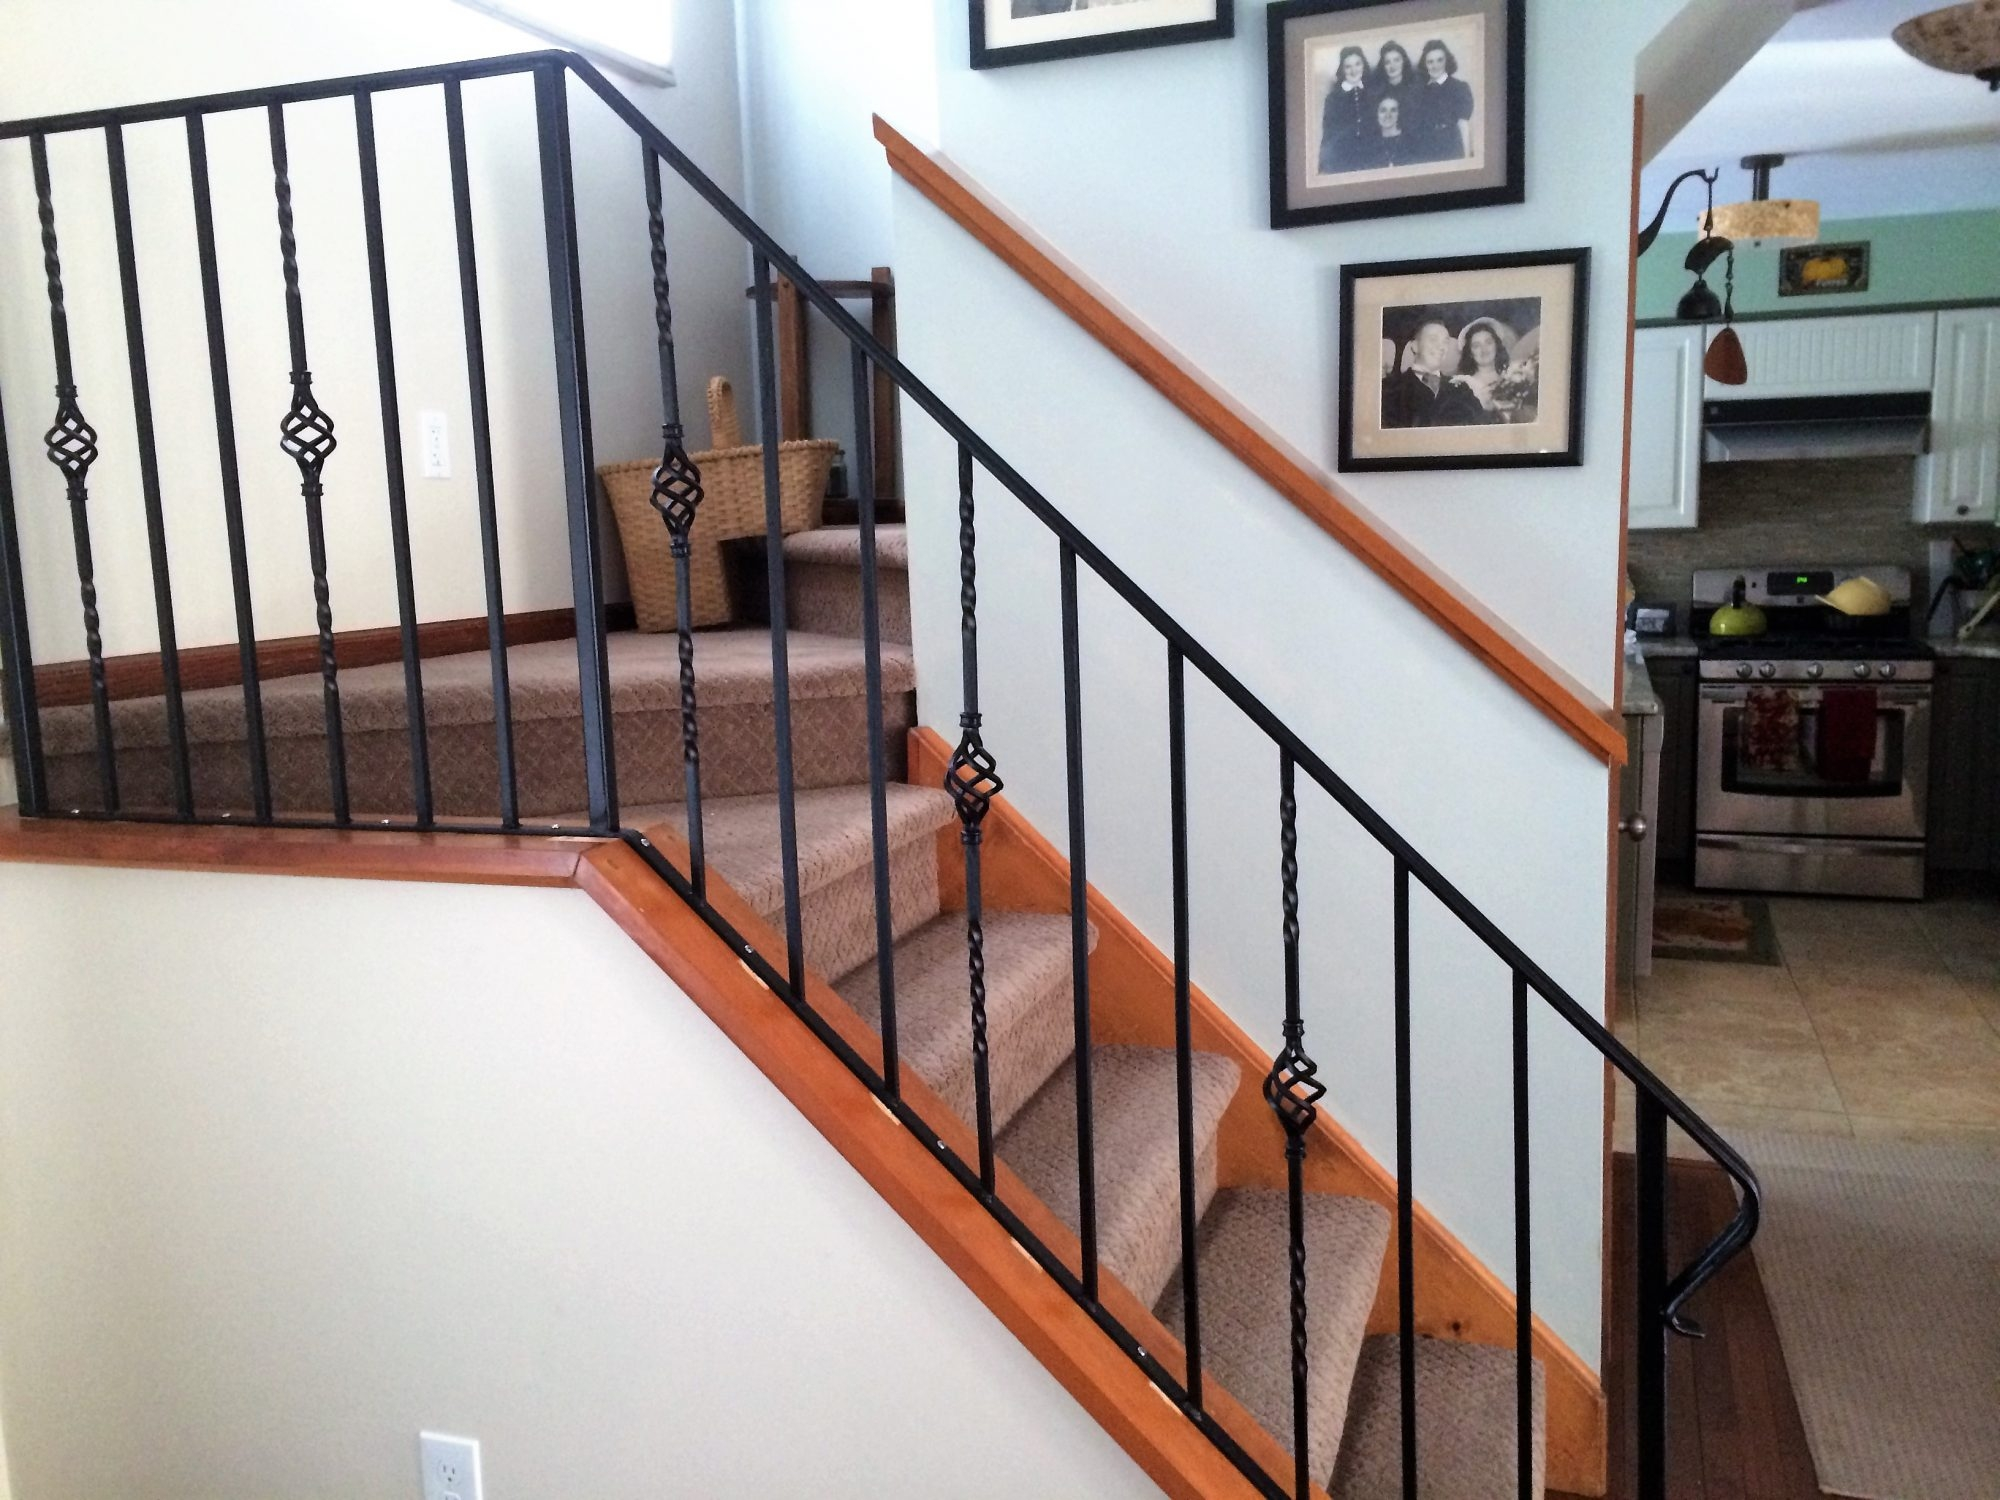 Wrought Iron Railing Systems New Jersey Mitchell Welding Iron   Rod Iron Interior Railings   Iron Work   White   Steel   Route   Staircase